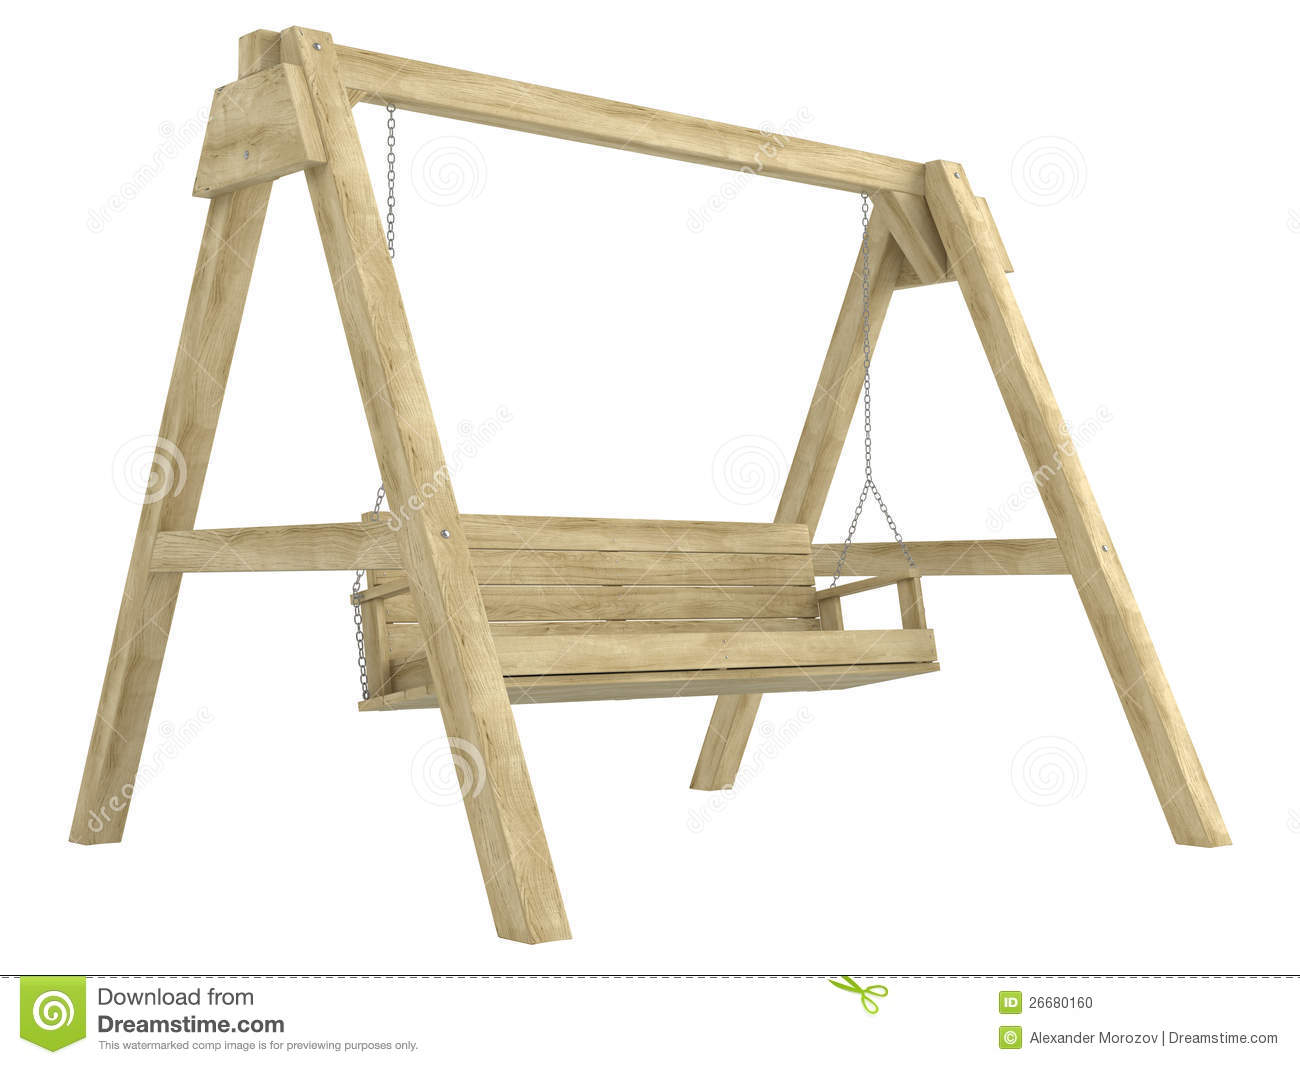 Wooden Garden Swing Bench Stock Photo - Image: 26680160